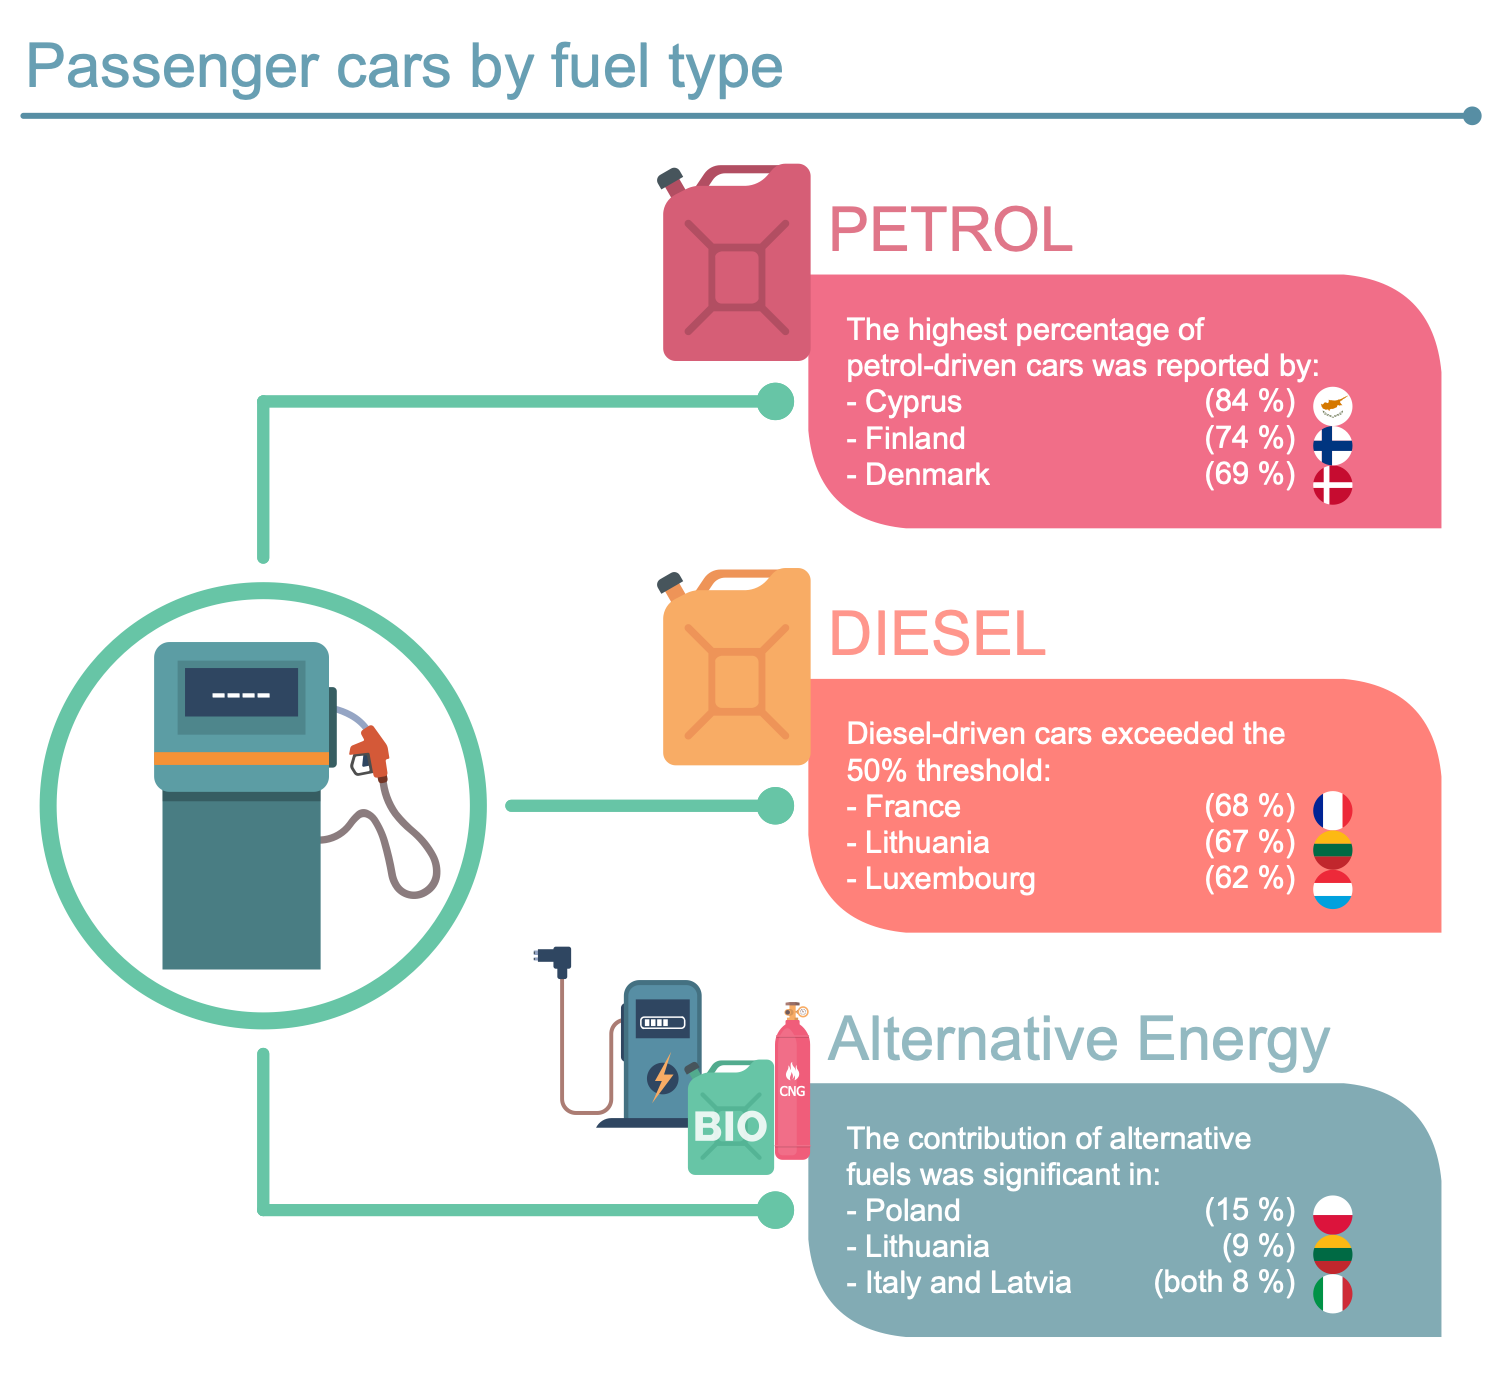 Passenger Cars by Fuel Type